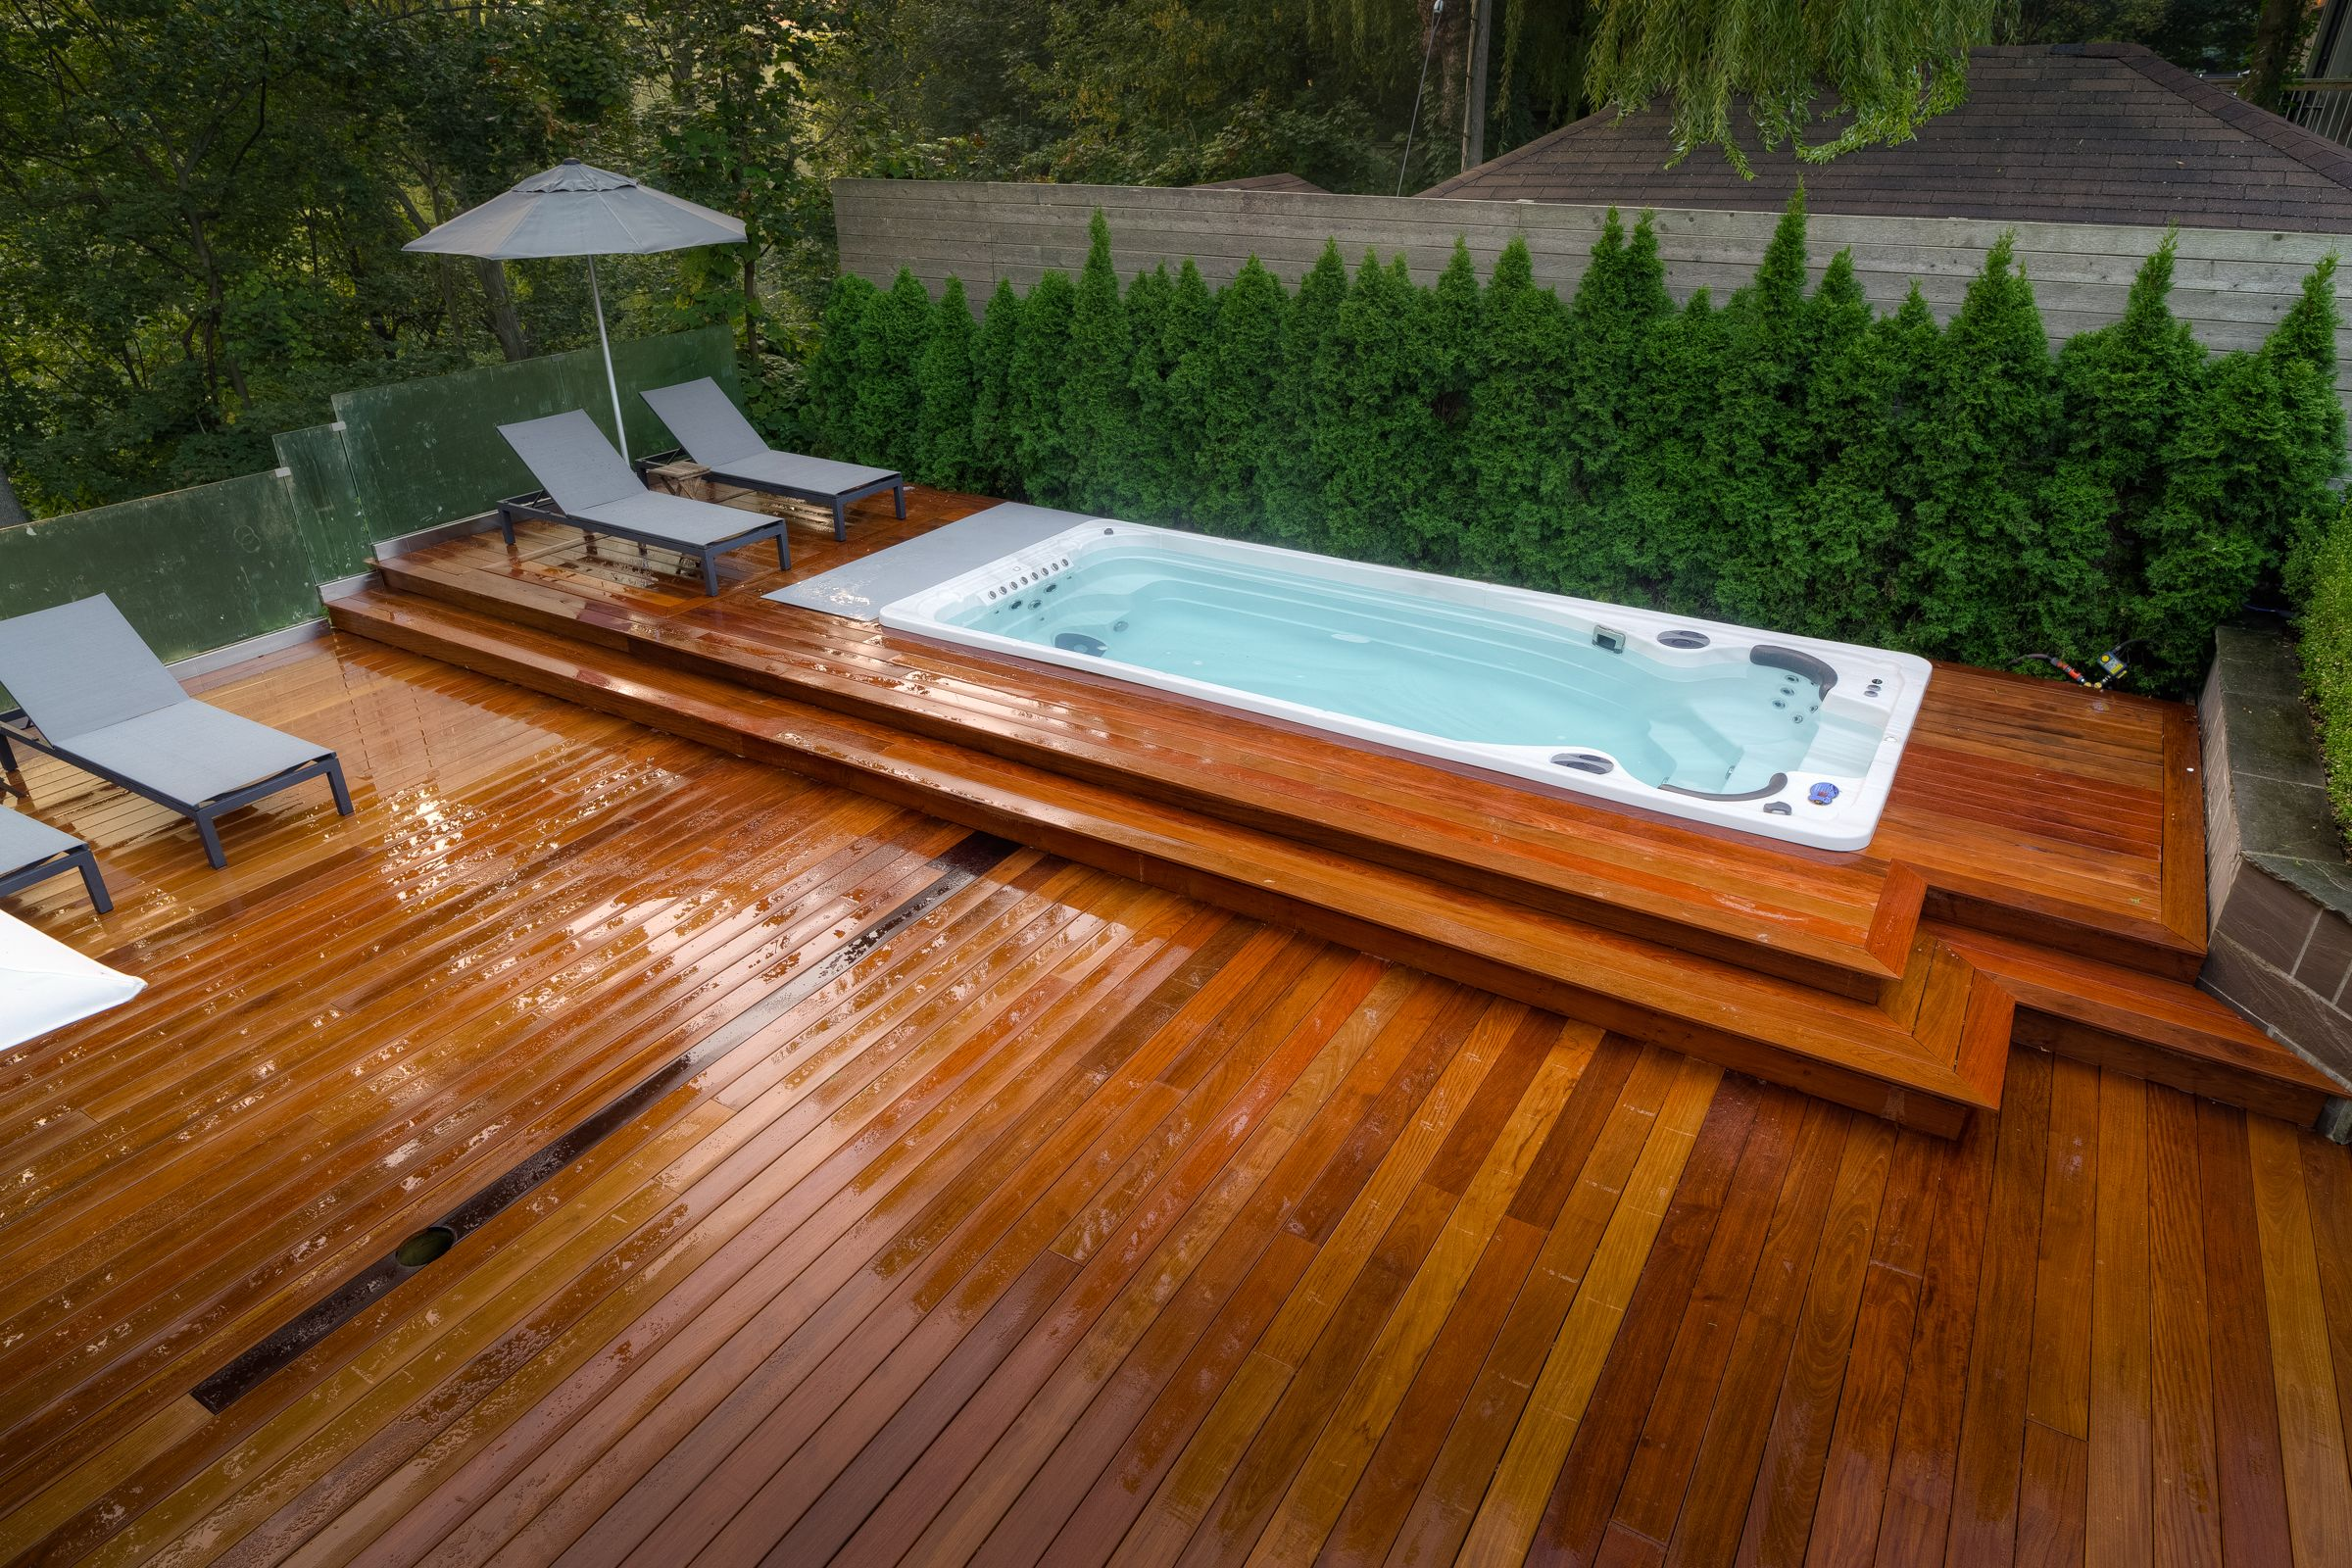 Swimming Pool Deck Cleaning : Hydropool self cleaning swim spa installed into a deck